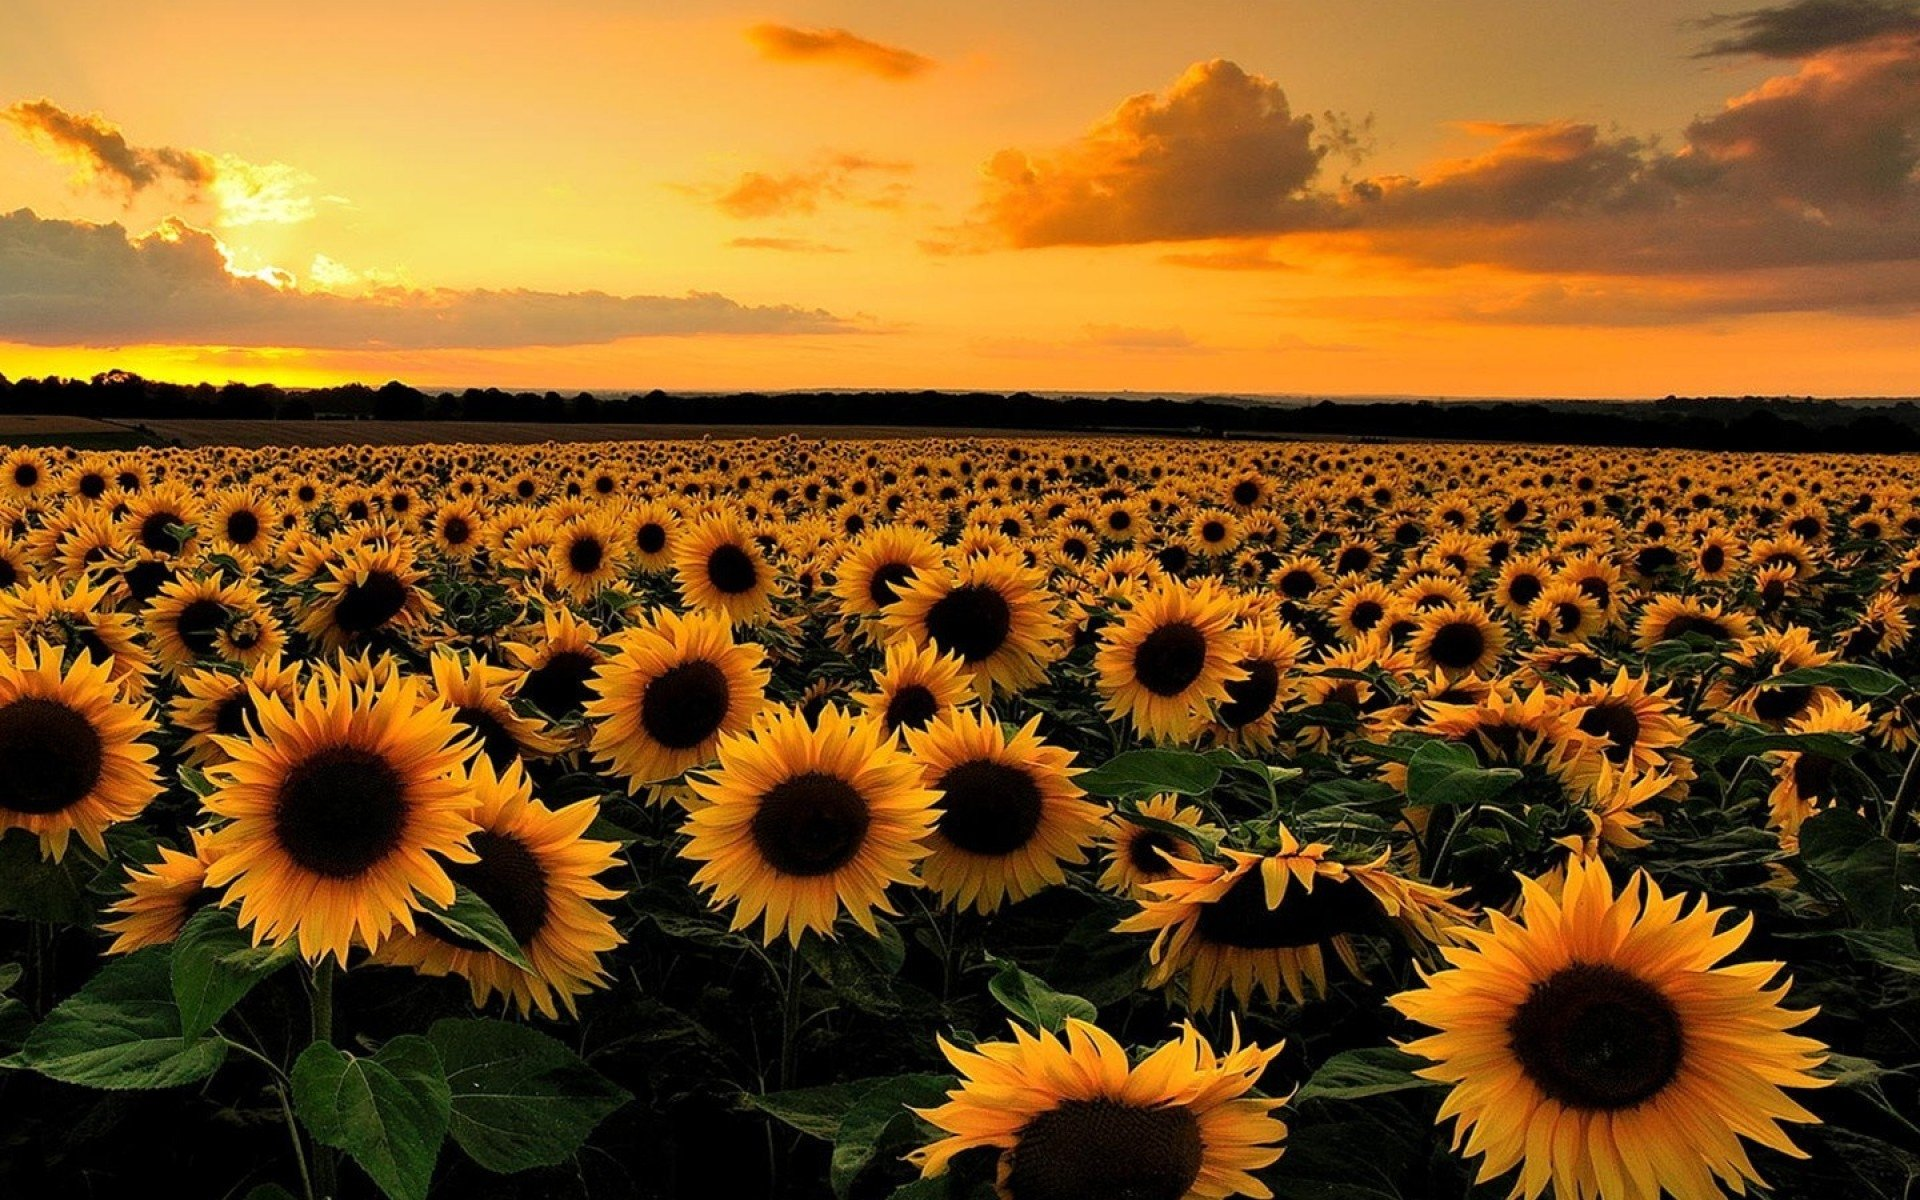 Field Of Sunflowers Wallpaper: Sunflower Field At Sunset HD Wallpaper